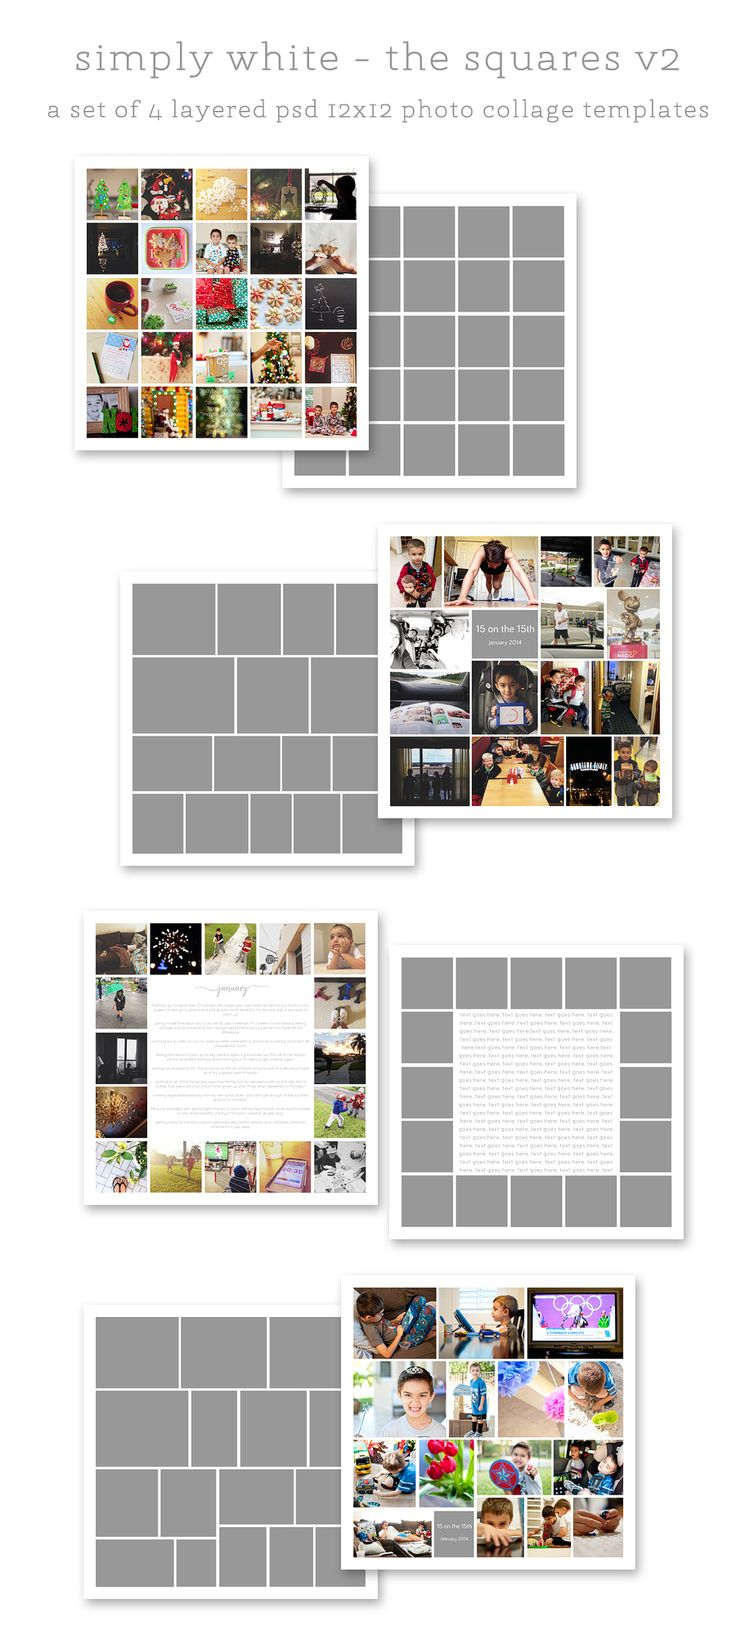 Famous 1 Year Experience Java Resume Format Thin 1 Year Experience Resume Format Free Download Regular 14 Year Old Resumes 17 Year Old Resume Template Old 2.25 Button Template Gray3 Main Types Of Resumes 25  Best Ideas About Collage Template On Pinterest | Photo Collage ..